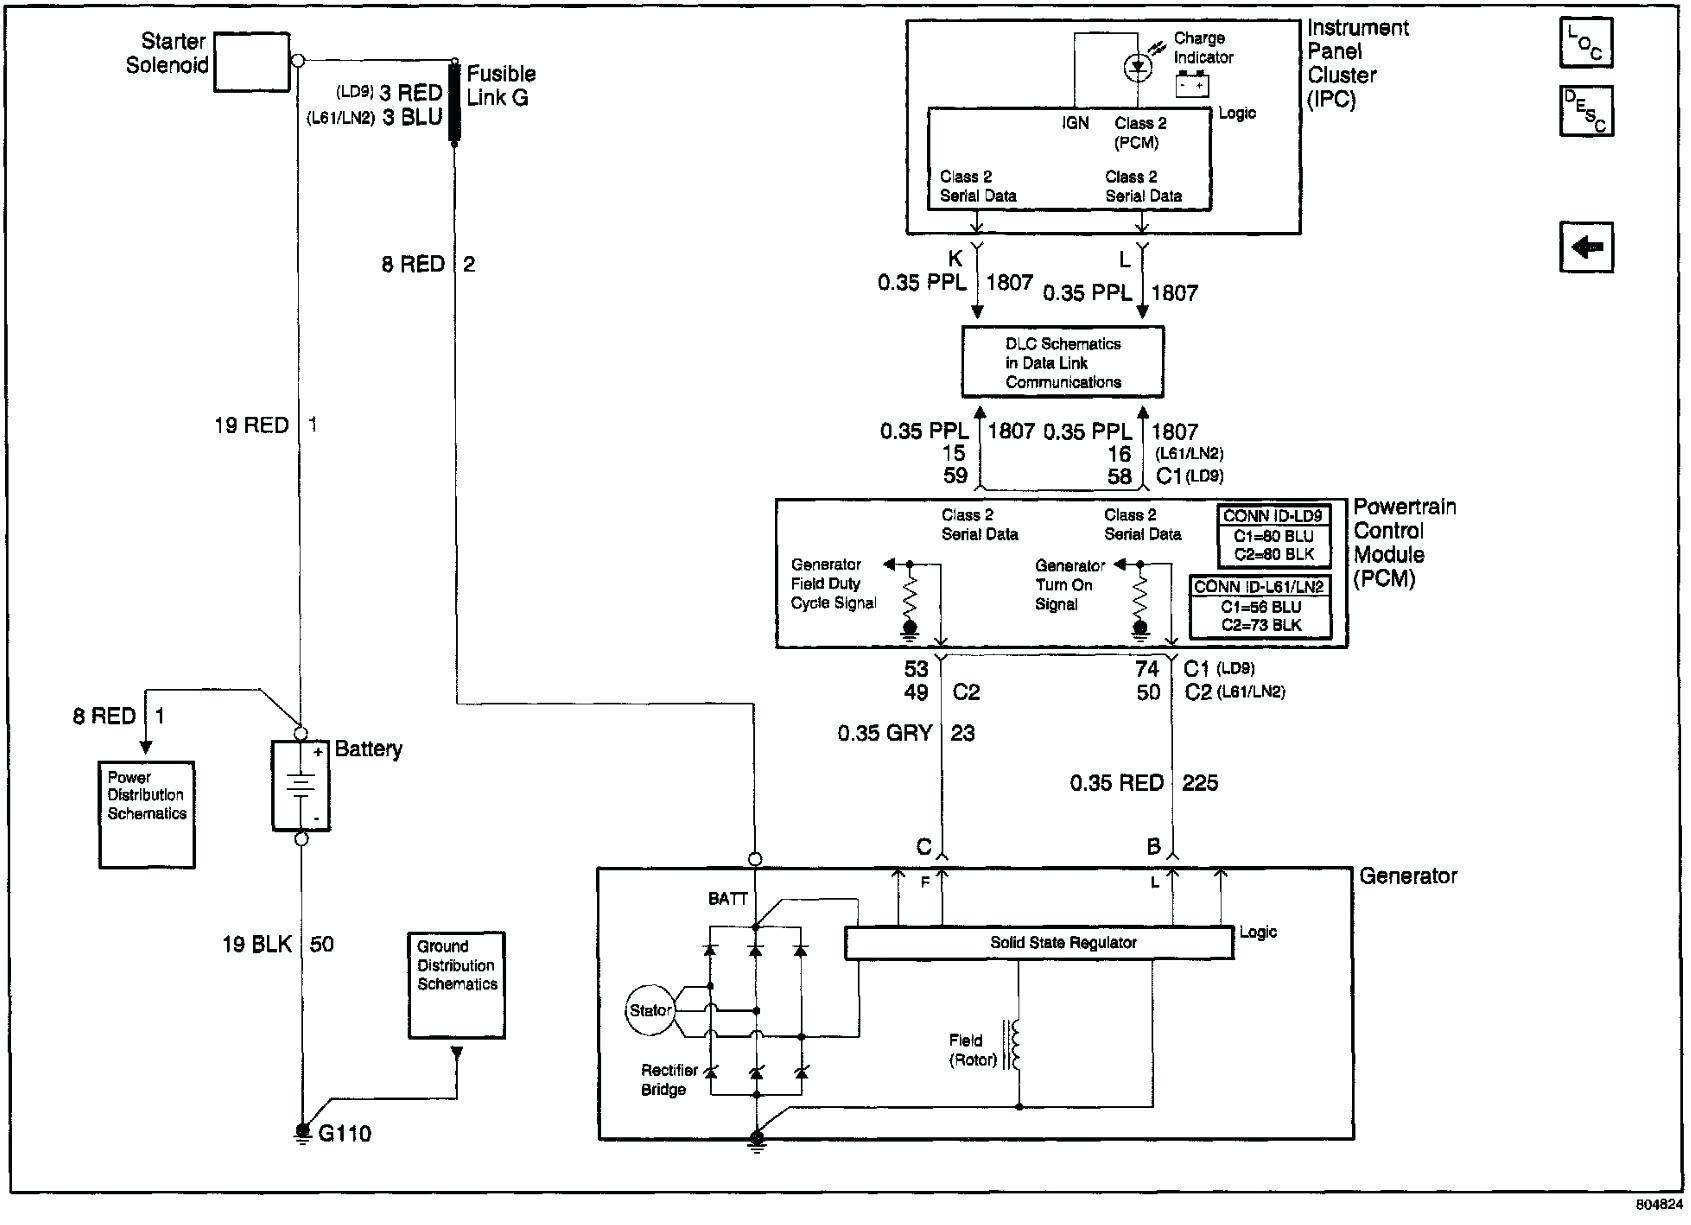 Ac Delco Alternator Wiring Diagram Auto Alternator Wiring Diagram Refrence Wiring Diagram For Ac Delco Of Ac Delco Alternator Wiring Diagram